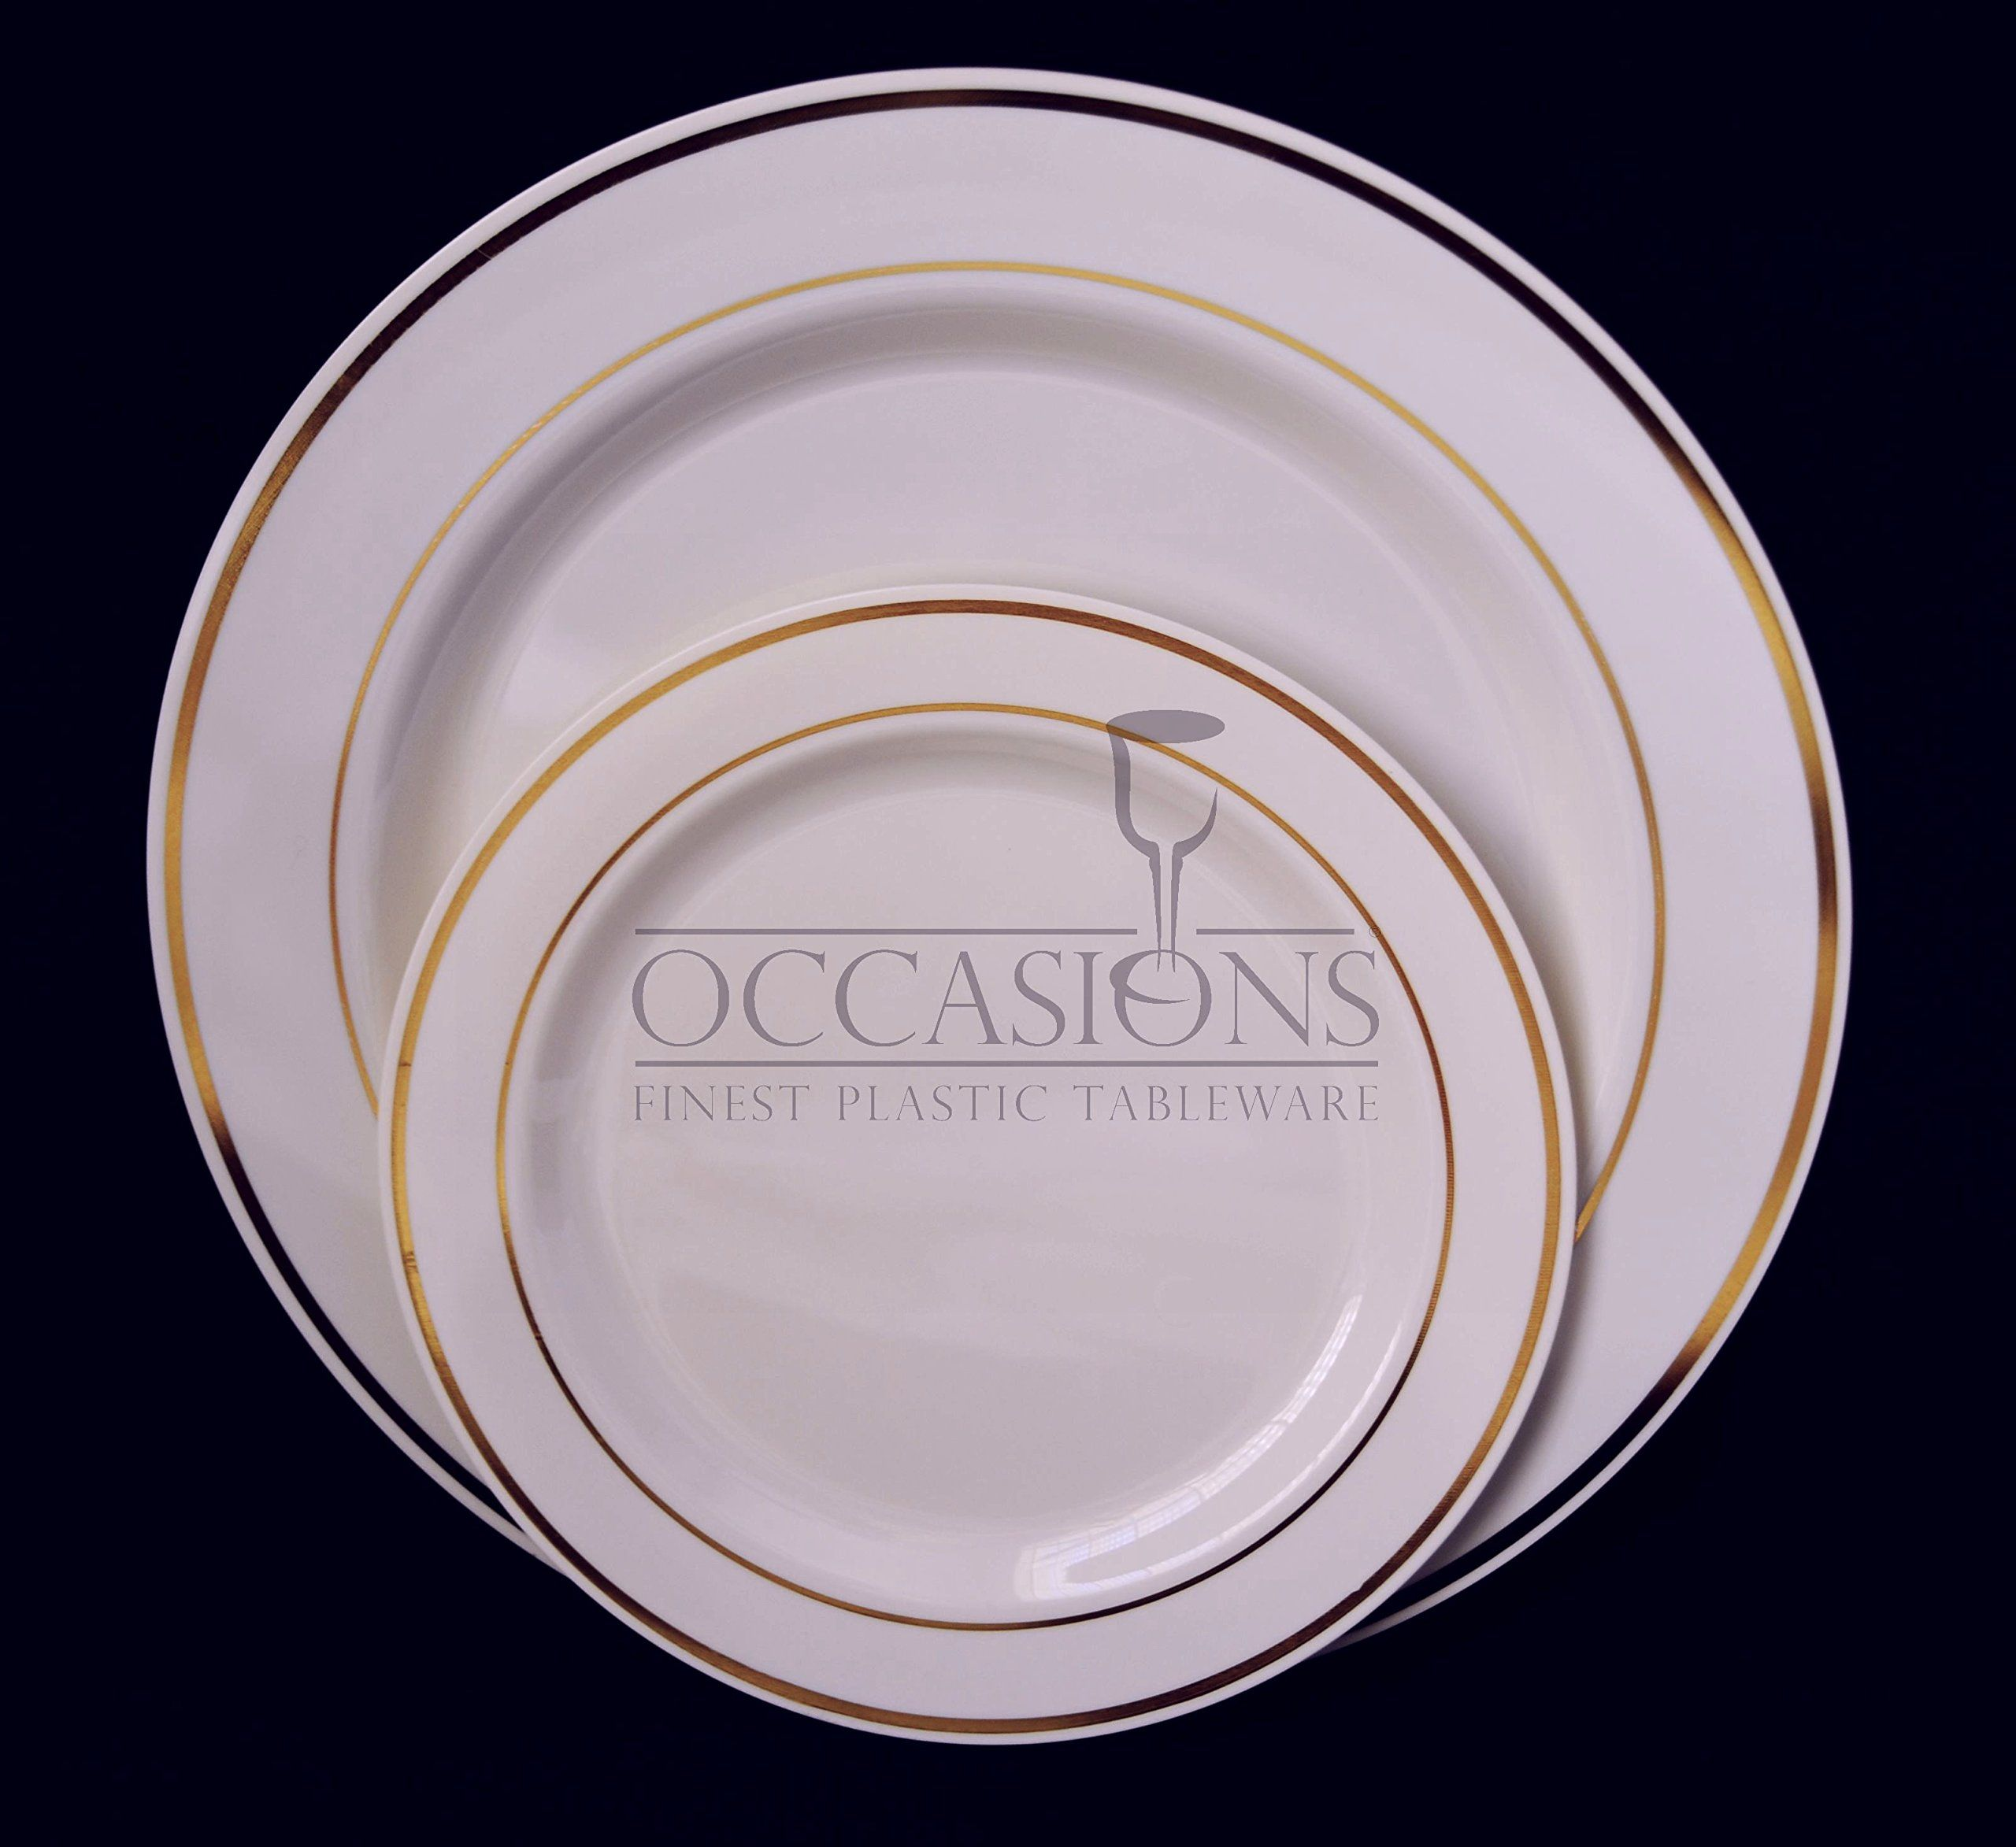 Amazon.com Bulk Disposable Plastic Plates - Masterpiece Style- Bone with Gold rim. Choose qttys and size inside! (10 10.5\u0027\u0027 dinner plate) Kitchen \u0026 ...  sc 1 st  Pinterest & Amazon.com: Bulk Disposable Plastic Plates - Masterpiece Style ...